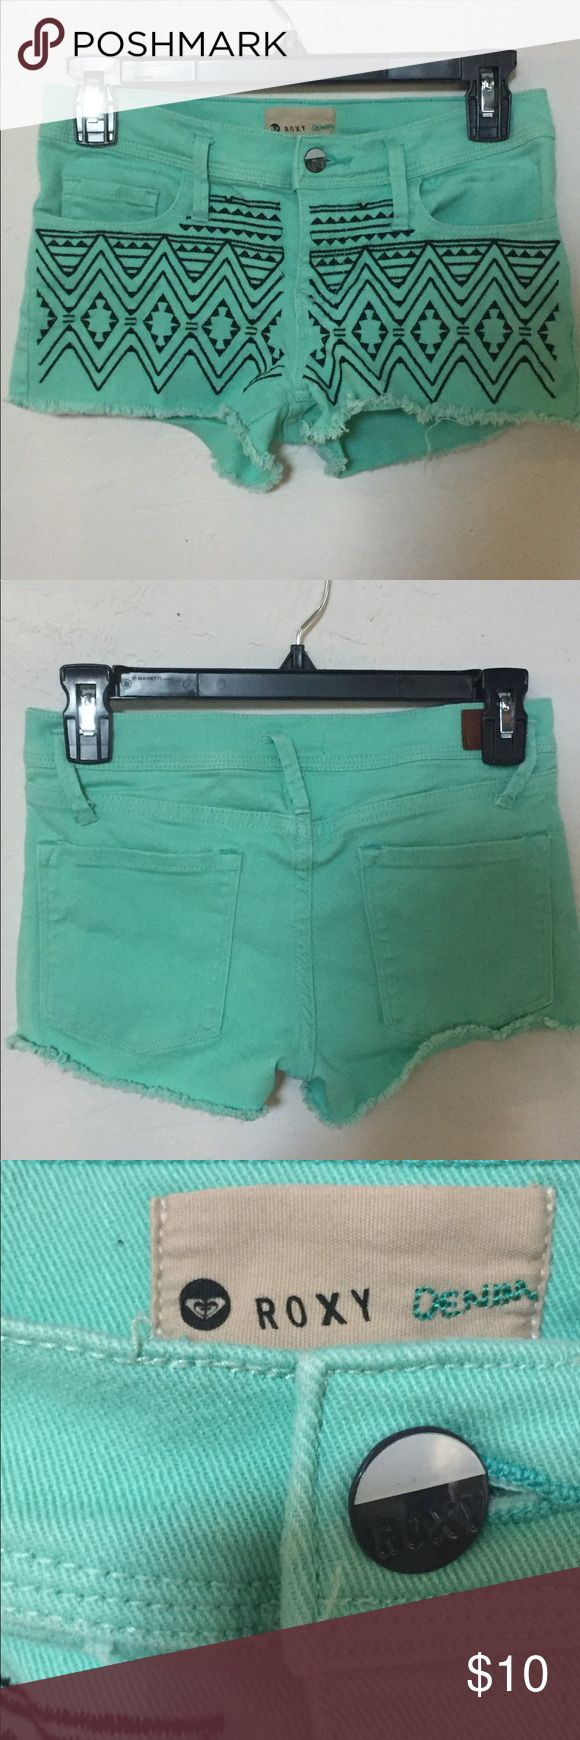 ROXY Tribal Print Shorts These are teal-grean shorts from ROXY. Super cute and n…